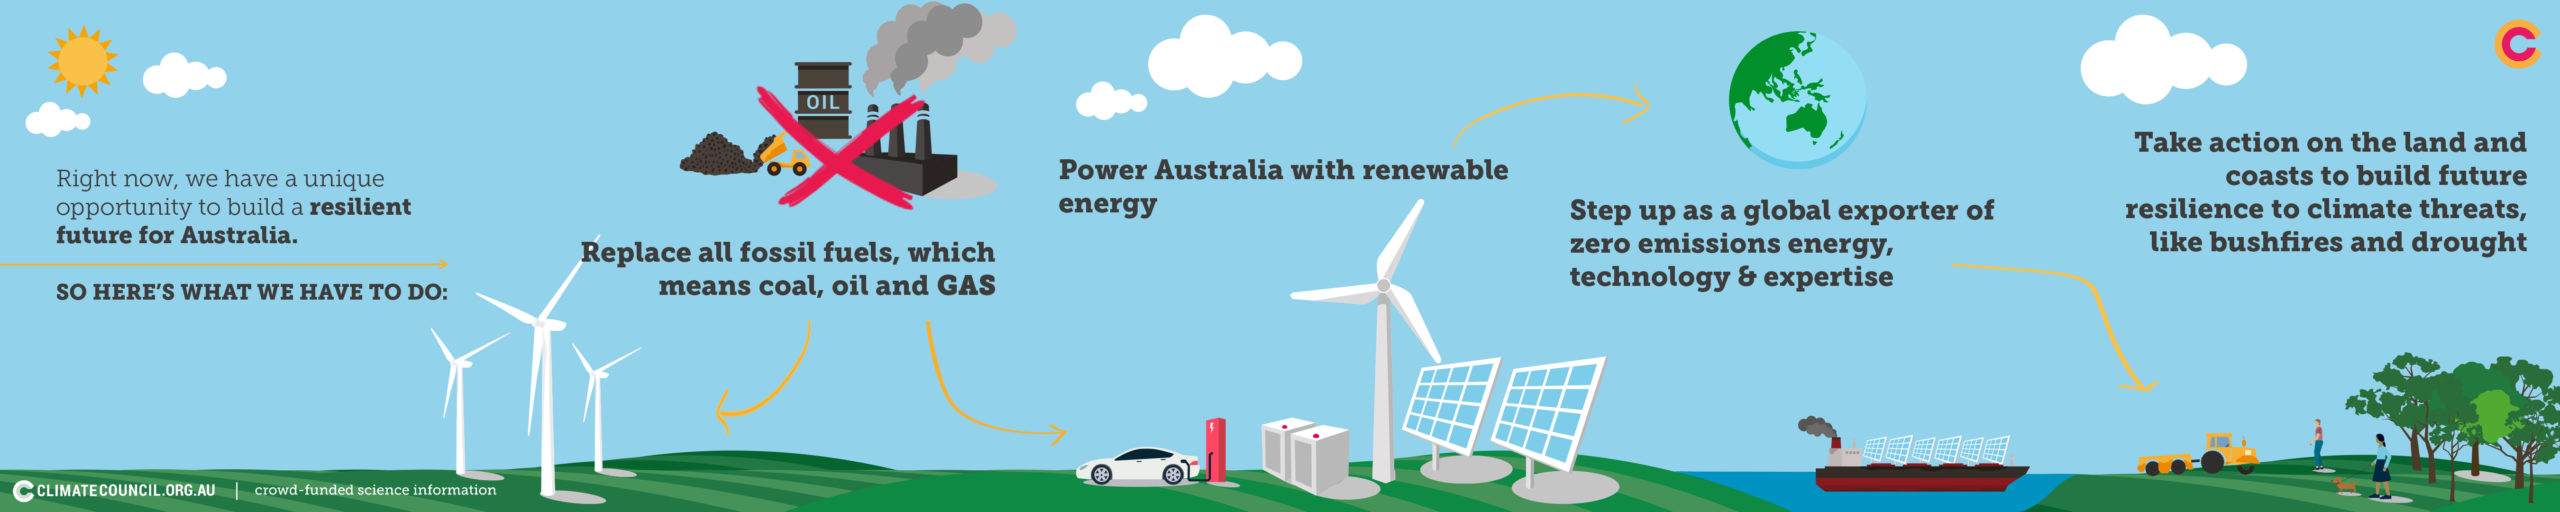 An image of the 4 steps to a renewable recovery for Australia.